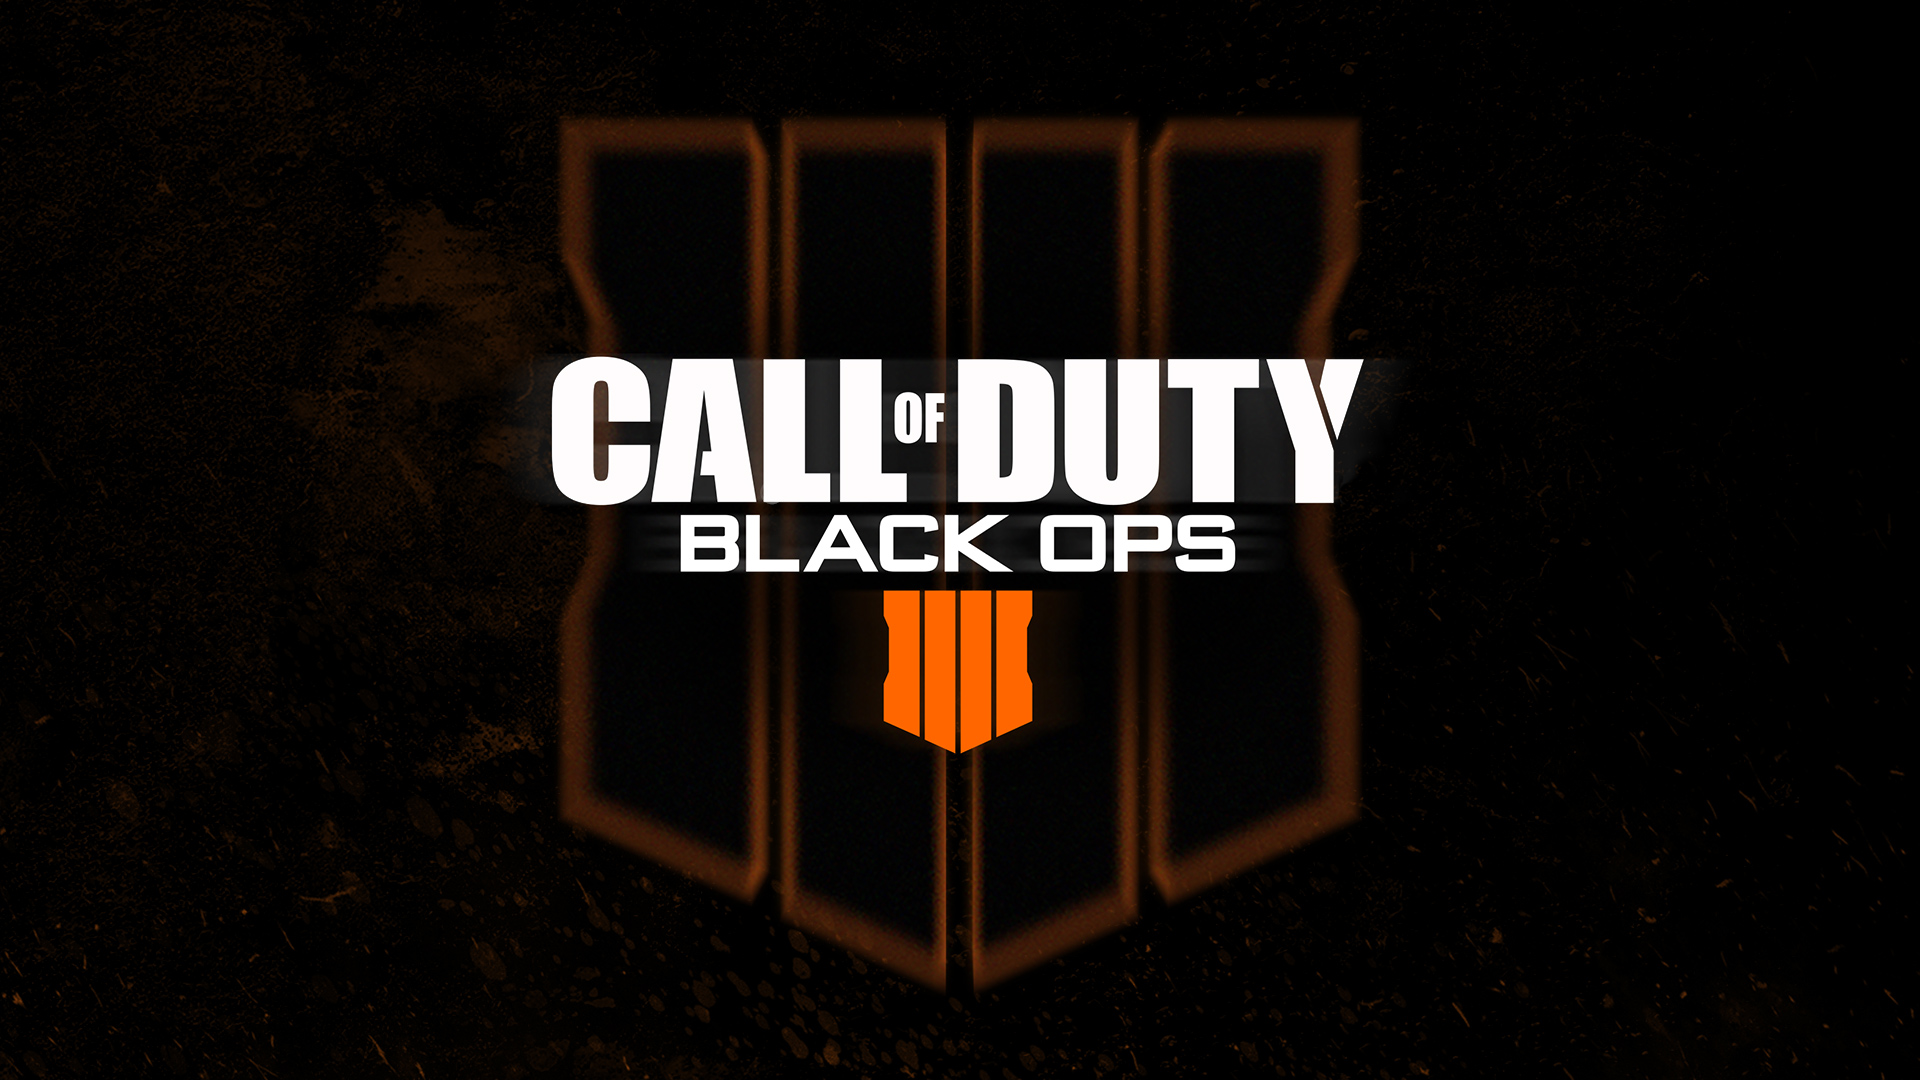 call of duty black ops 4 game logo wallpaper 65185